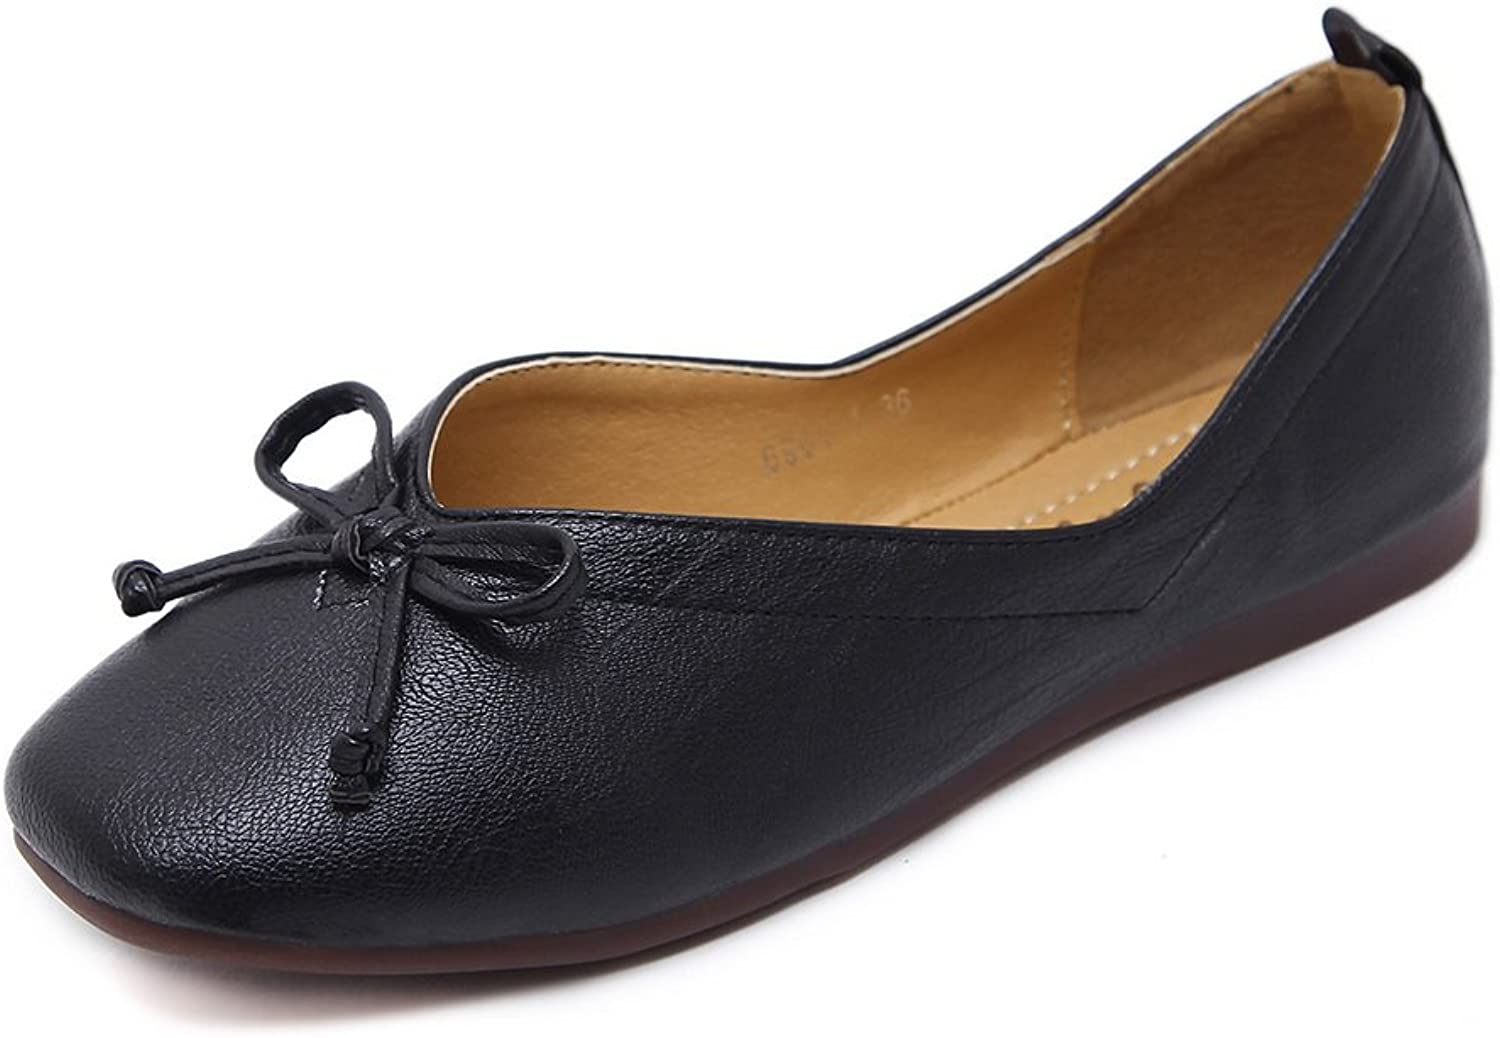 AdeeSu Womens Bows Square-Toe Low-Cut Uppers Apricot Urethane Flats shoes -